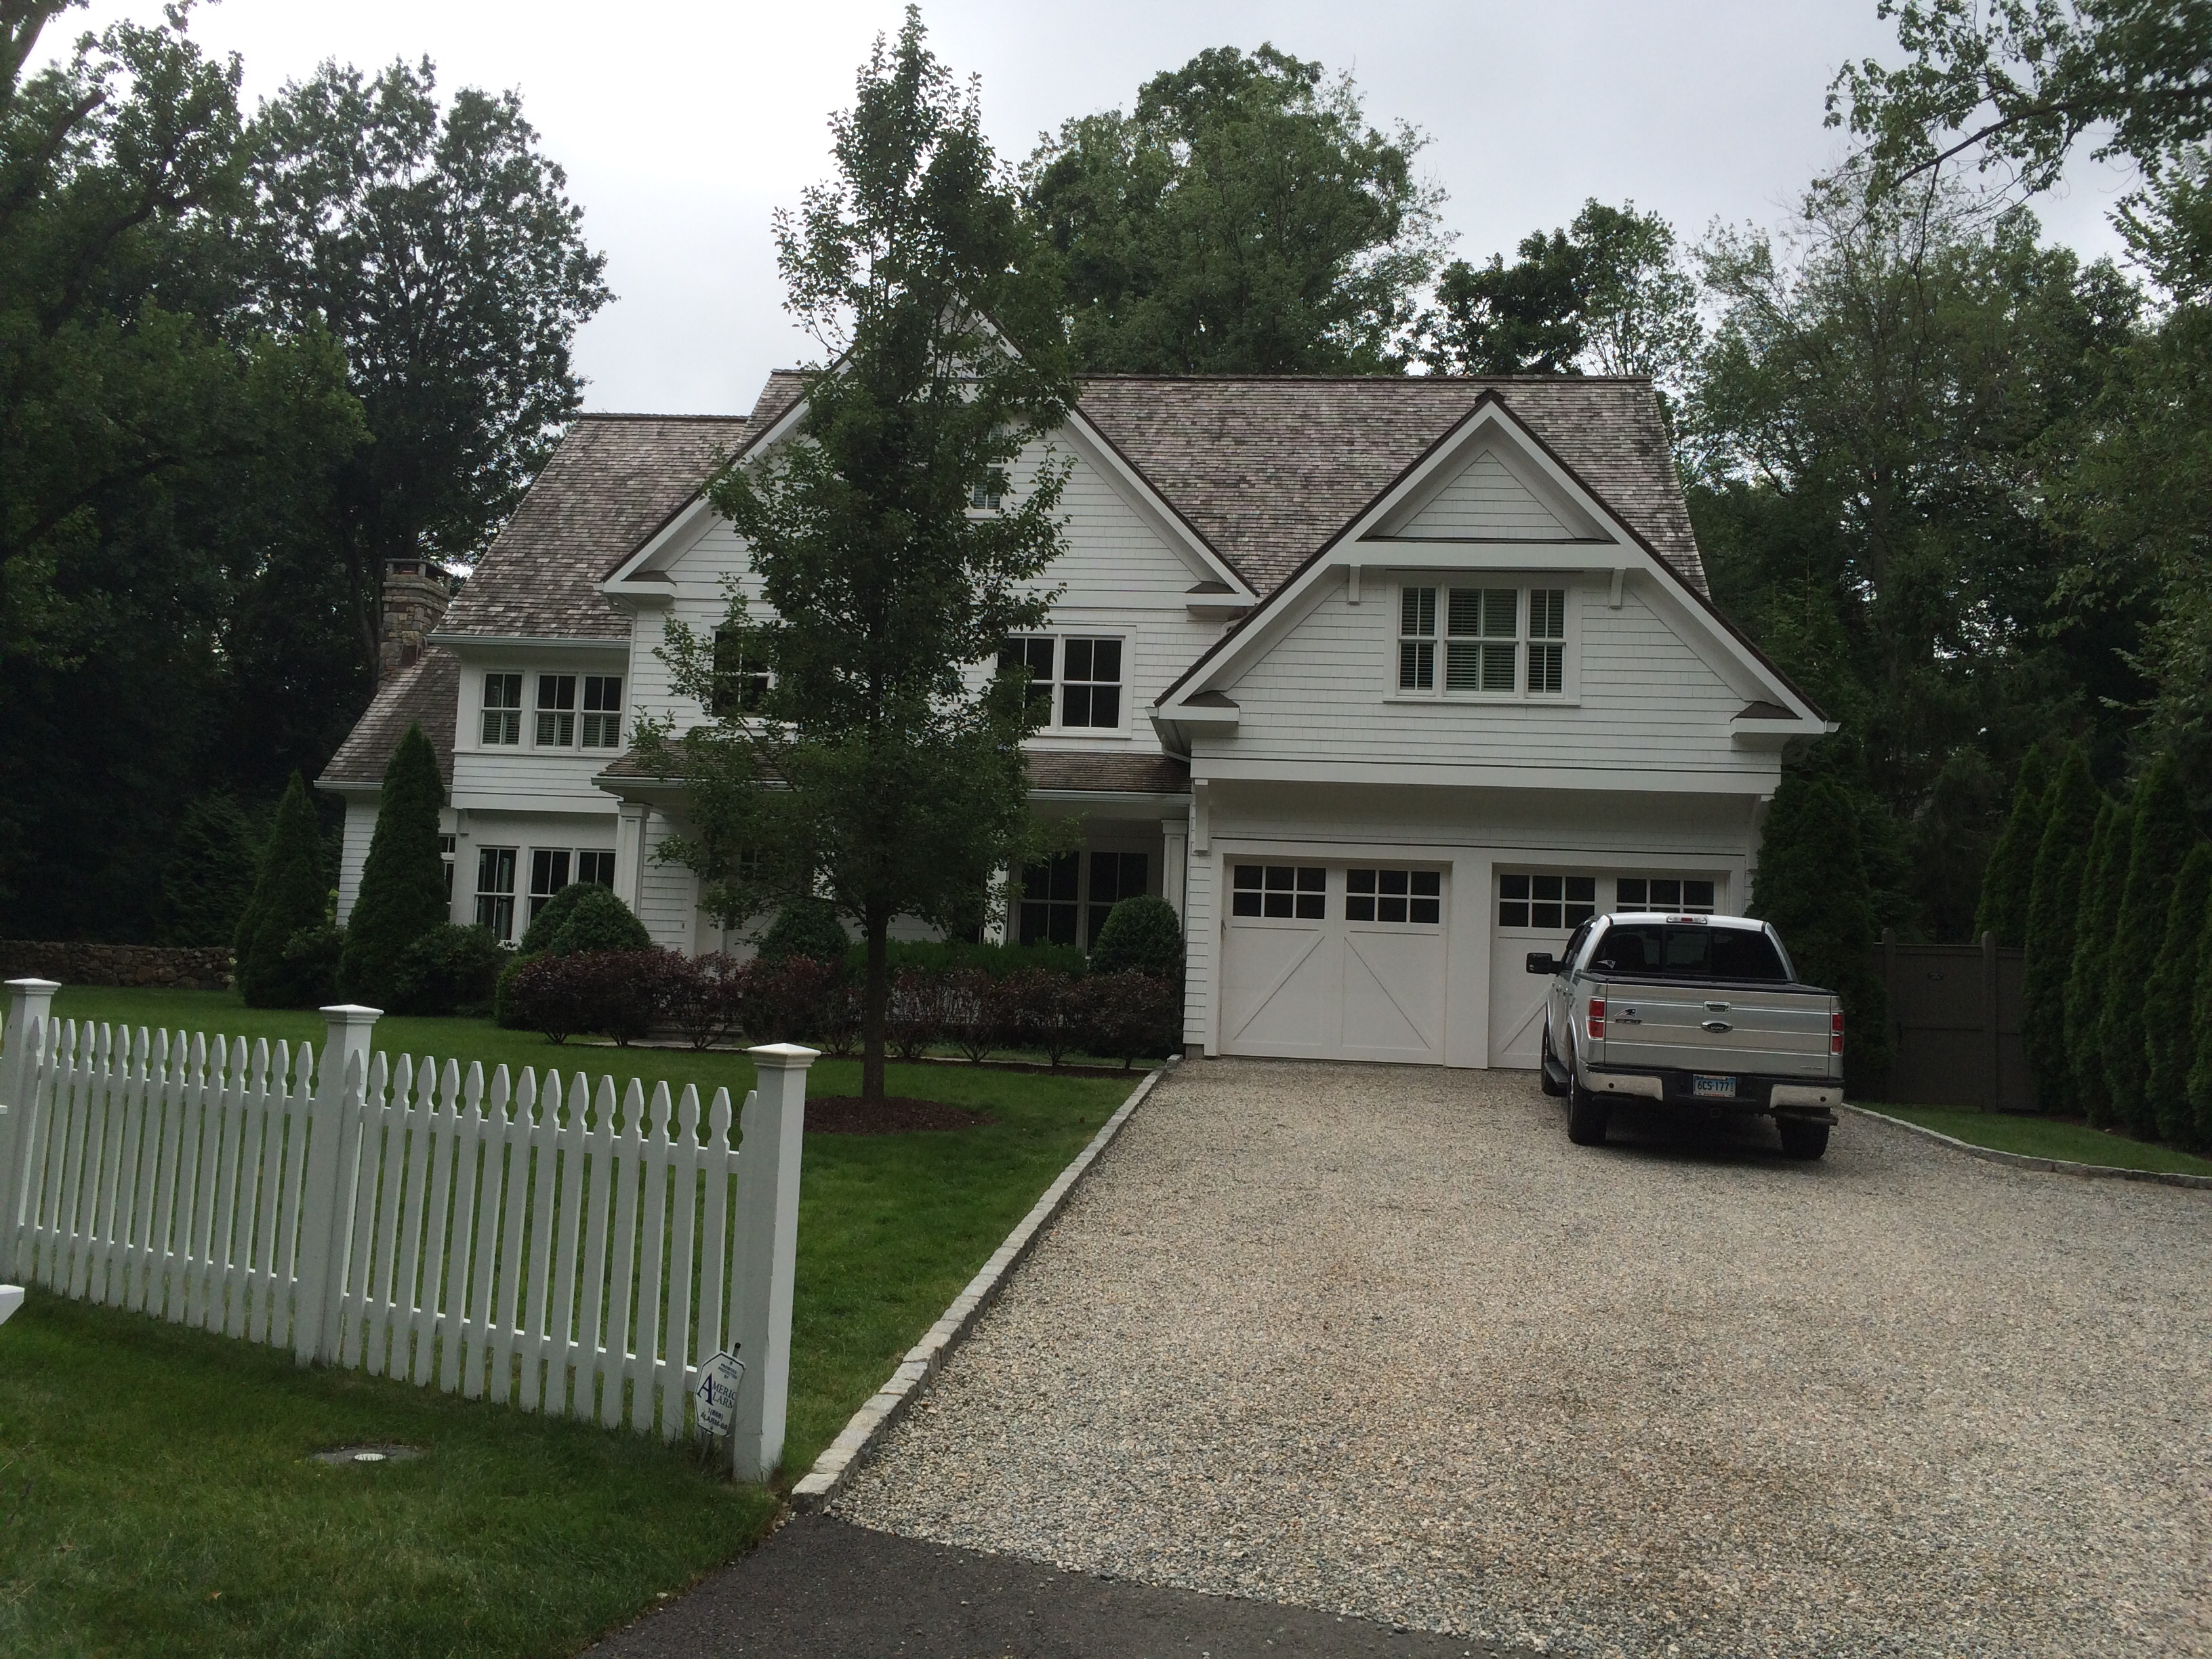 Noroton Ave Home Goes for 2M Other Recent Darien Home Sales